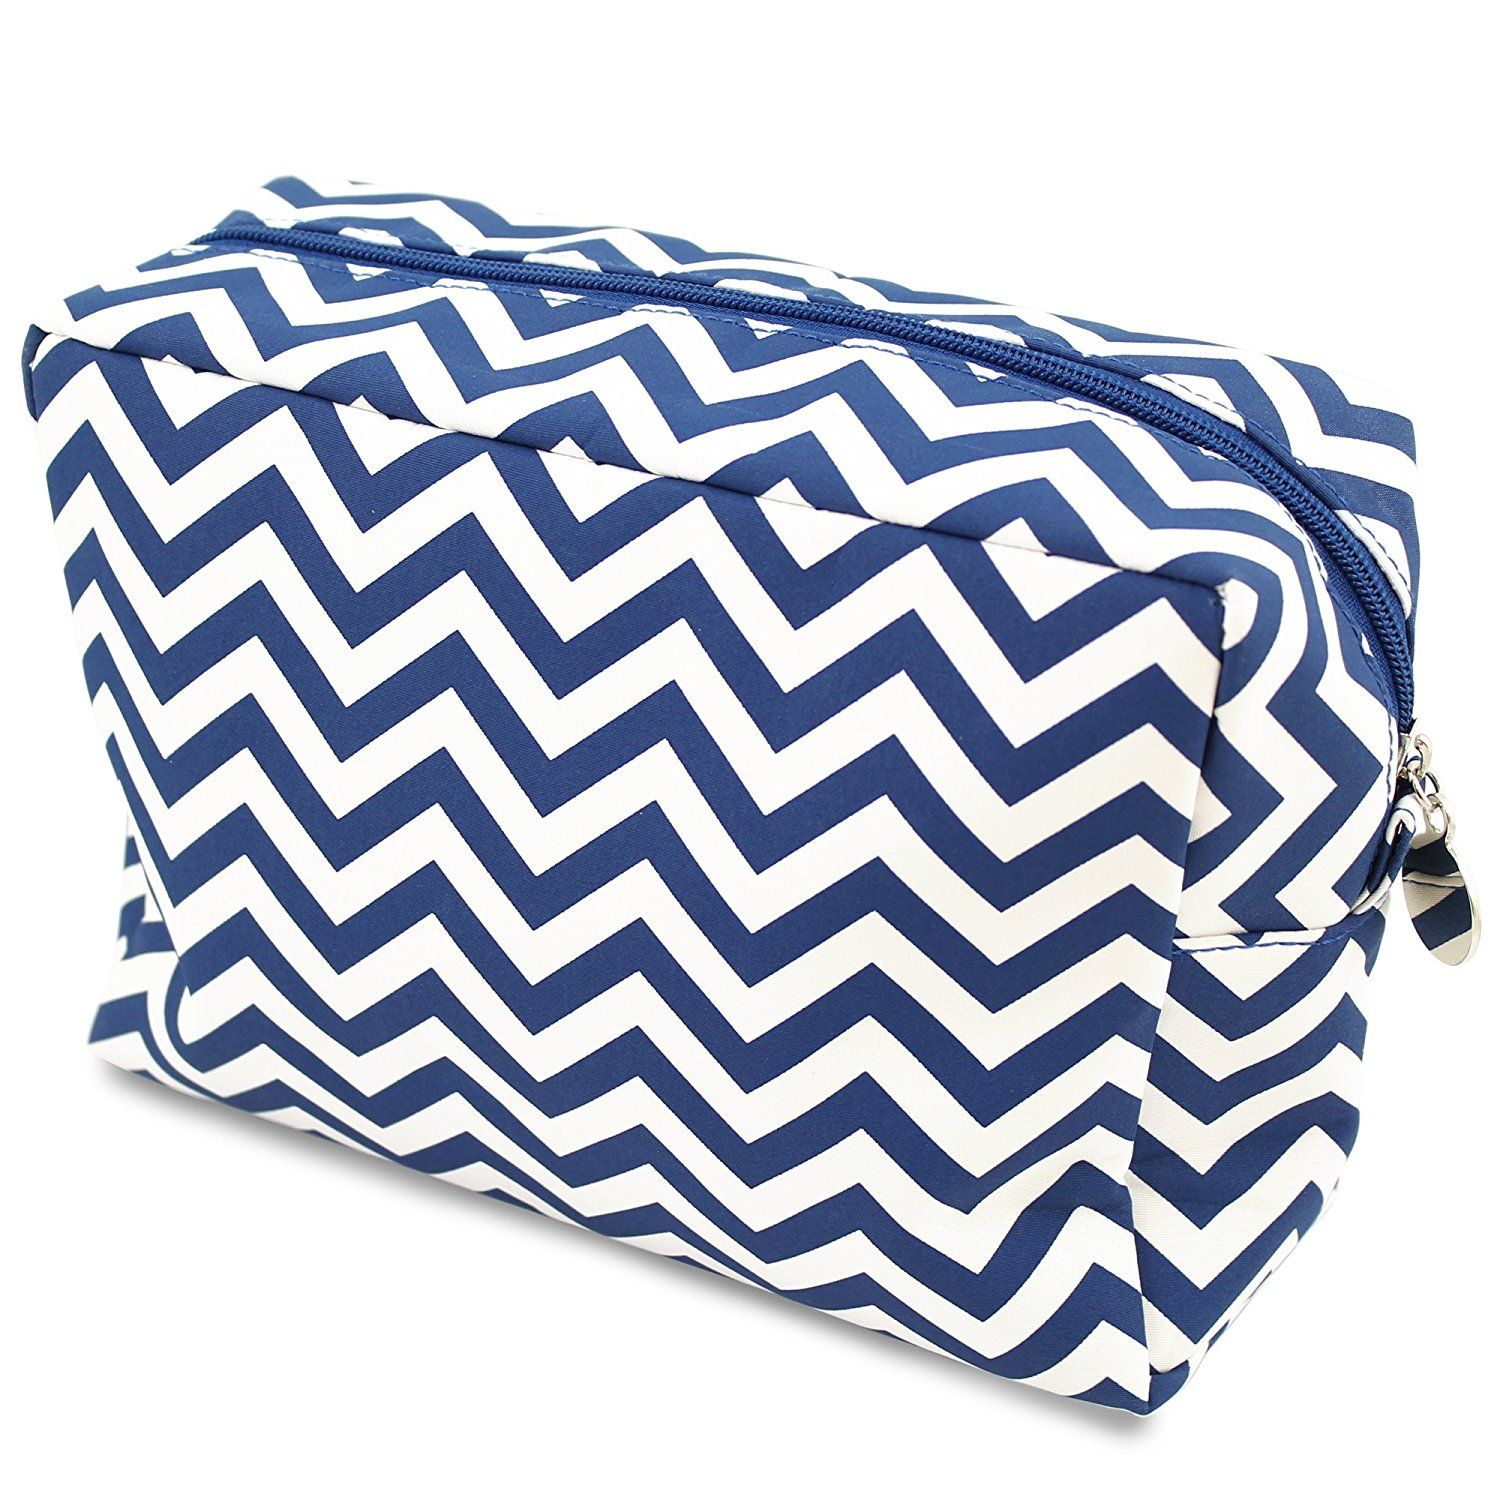 Cathy's Concepts Chevron Spa Bag, Navy Visit the image